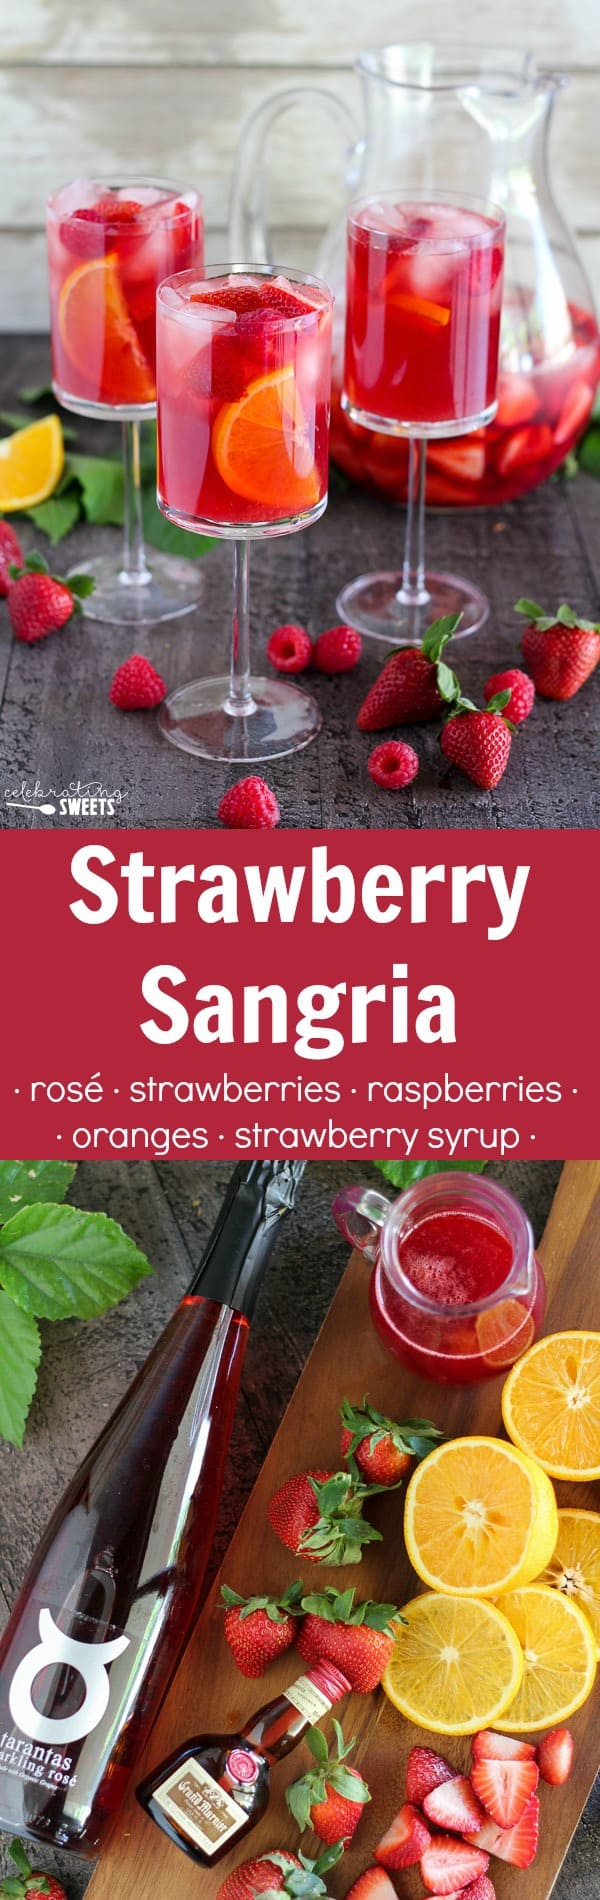 Strawberry sangria in a glass.